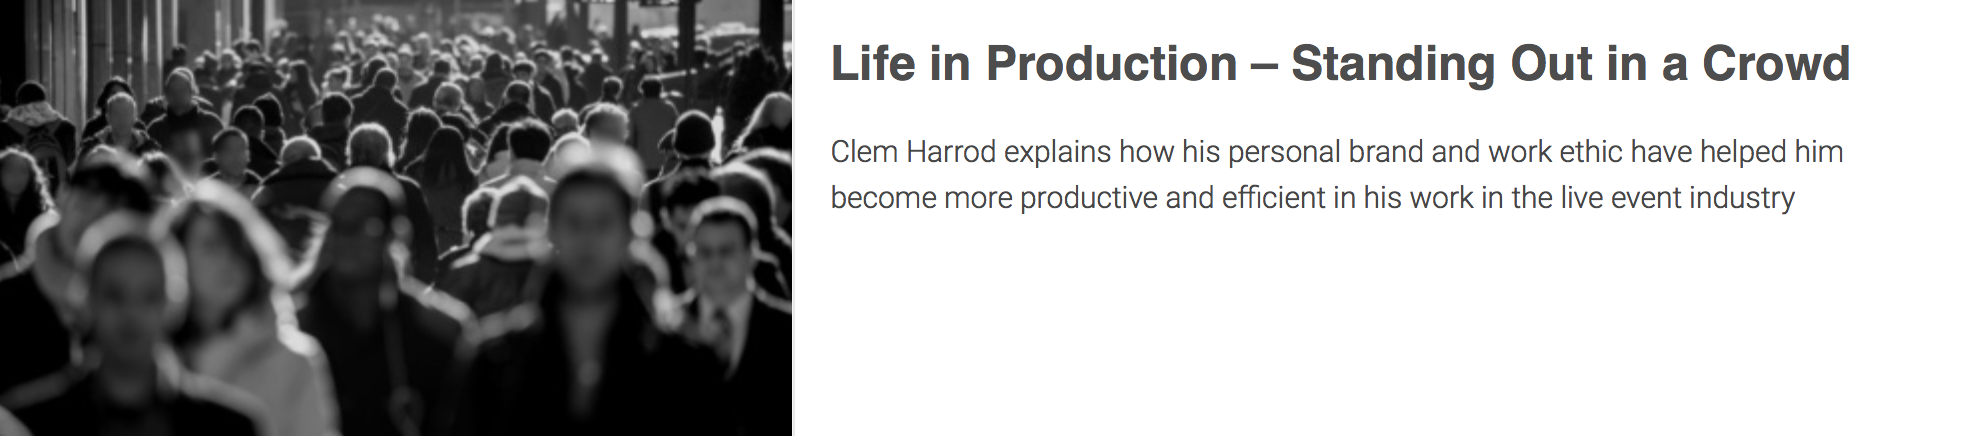 ClemCo AV life-production-standing-crowd/